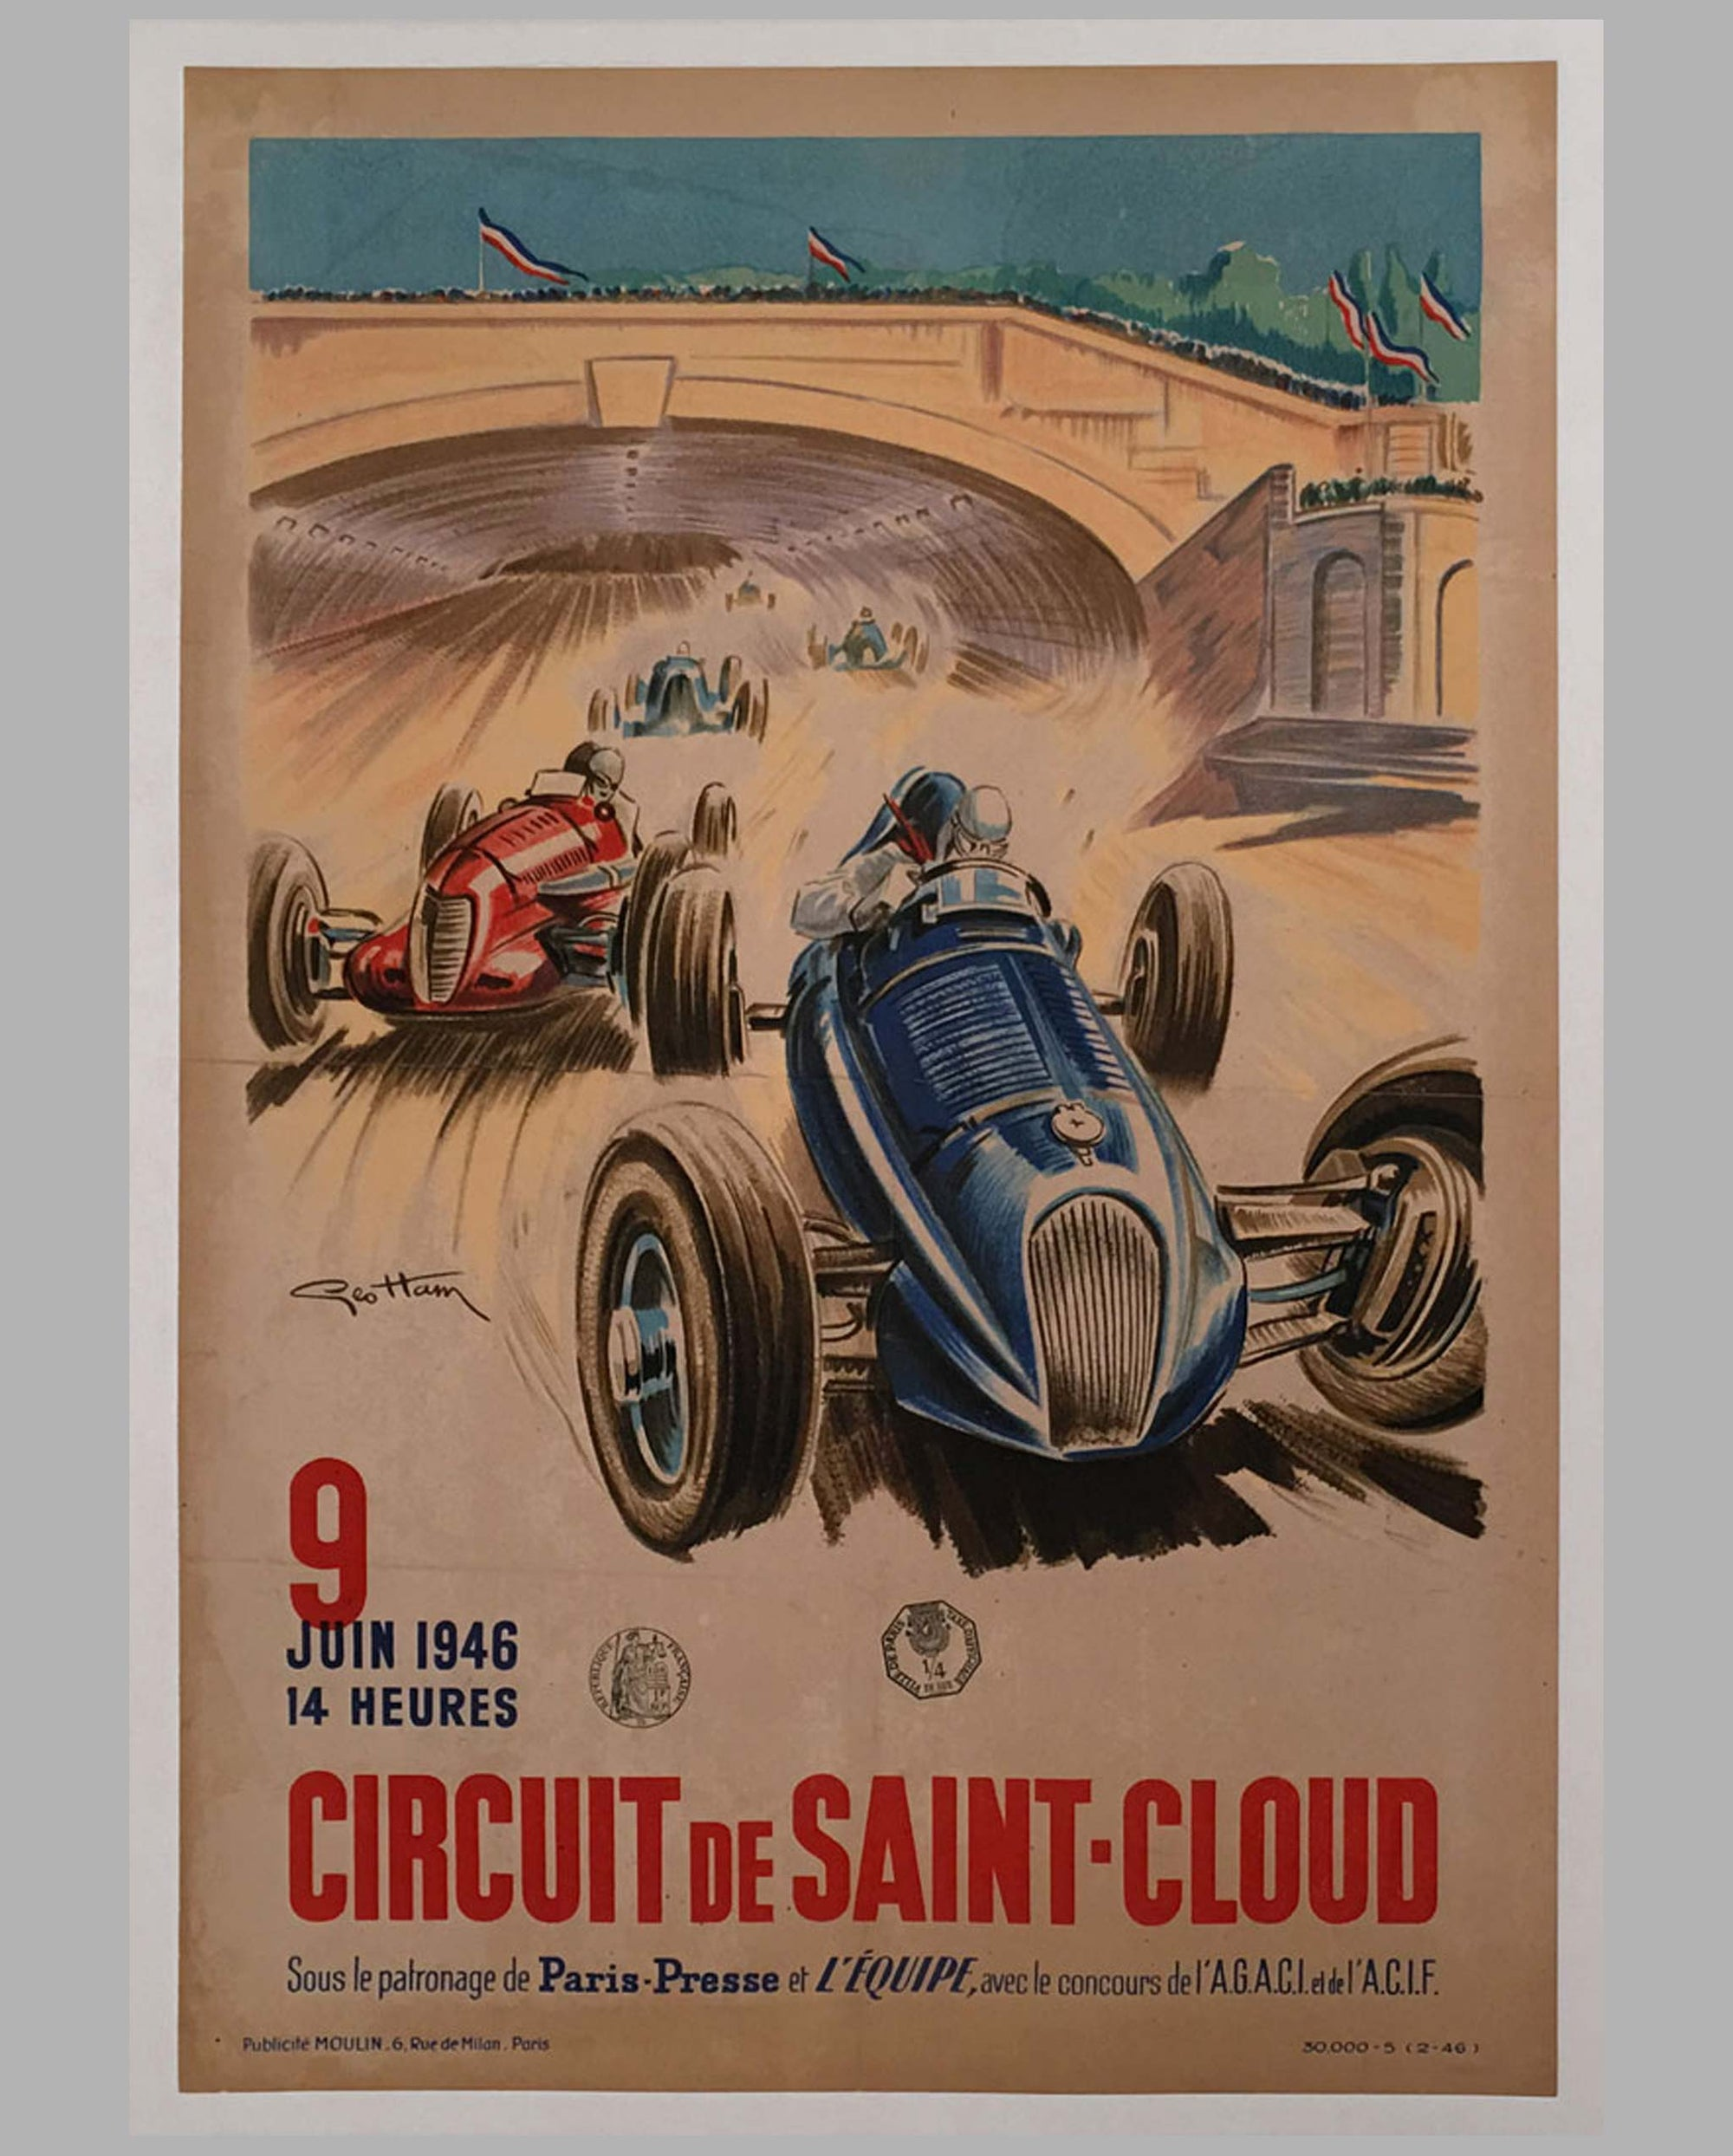 1946 Circuit de Saint-Cloud original poster by Geo Ham